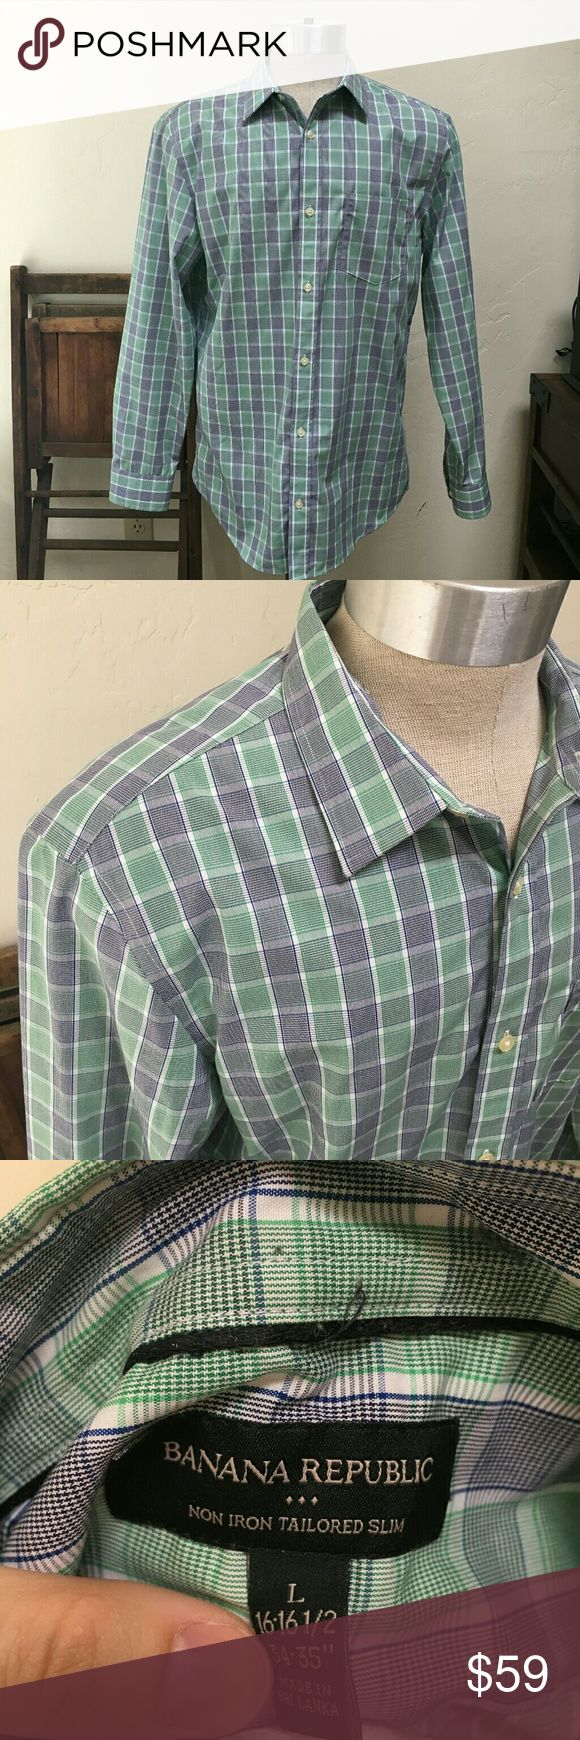 Banana Republic non iron dress shirt large Barely used no issues green and grey plaid dress shirt.  Non iron design. Banana Republic Shirts Dress Shirts